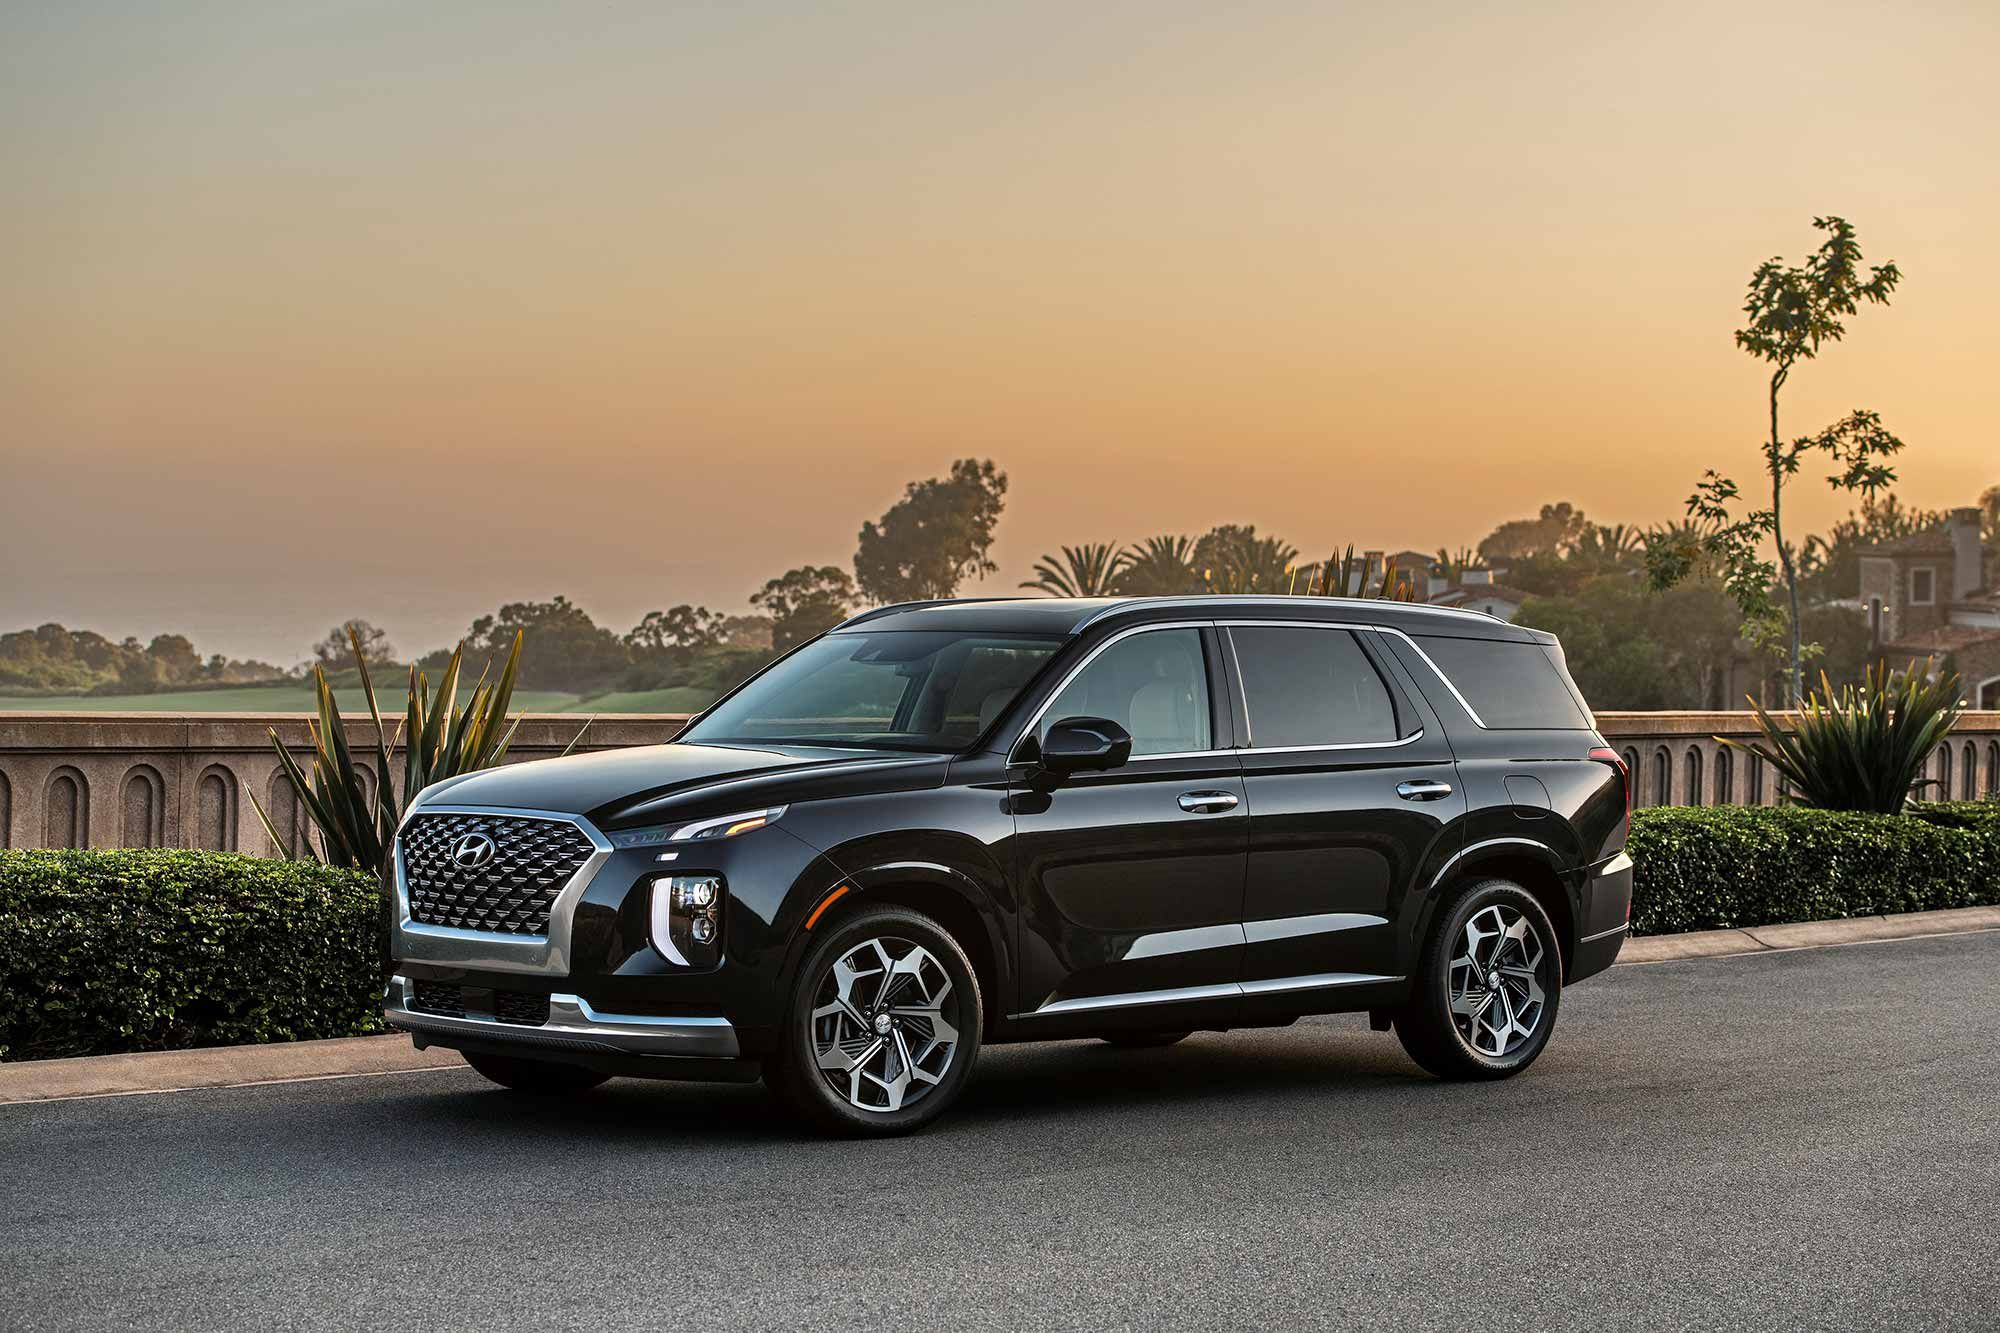 The 2021 Hyundai Palisade can tow up to 5,000 pounds.